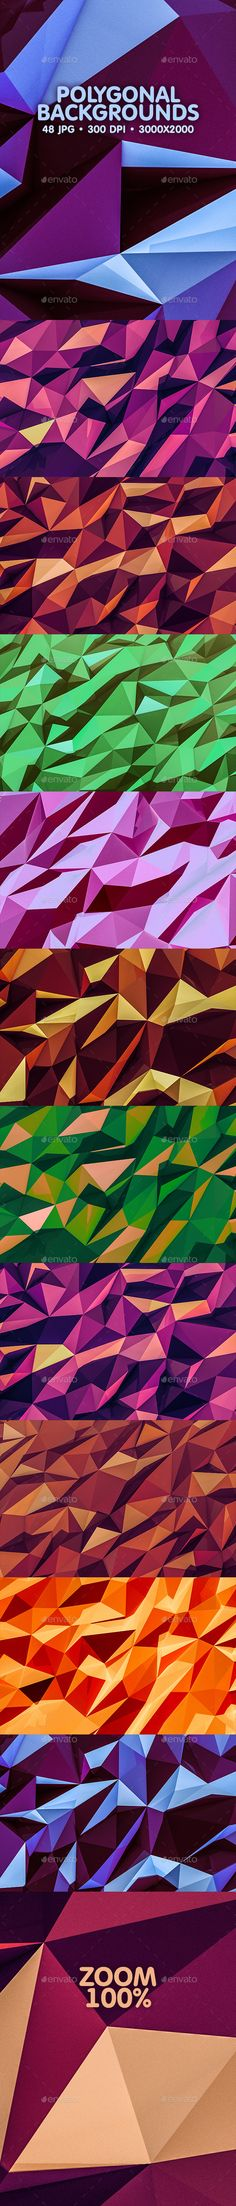 Polygonal Backgrounds - #Backgrounds Graphics Download here: https://graphicriver.net/item/polygonal-backgrounds/20218157?ref=alena994